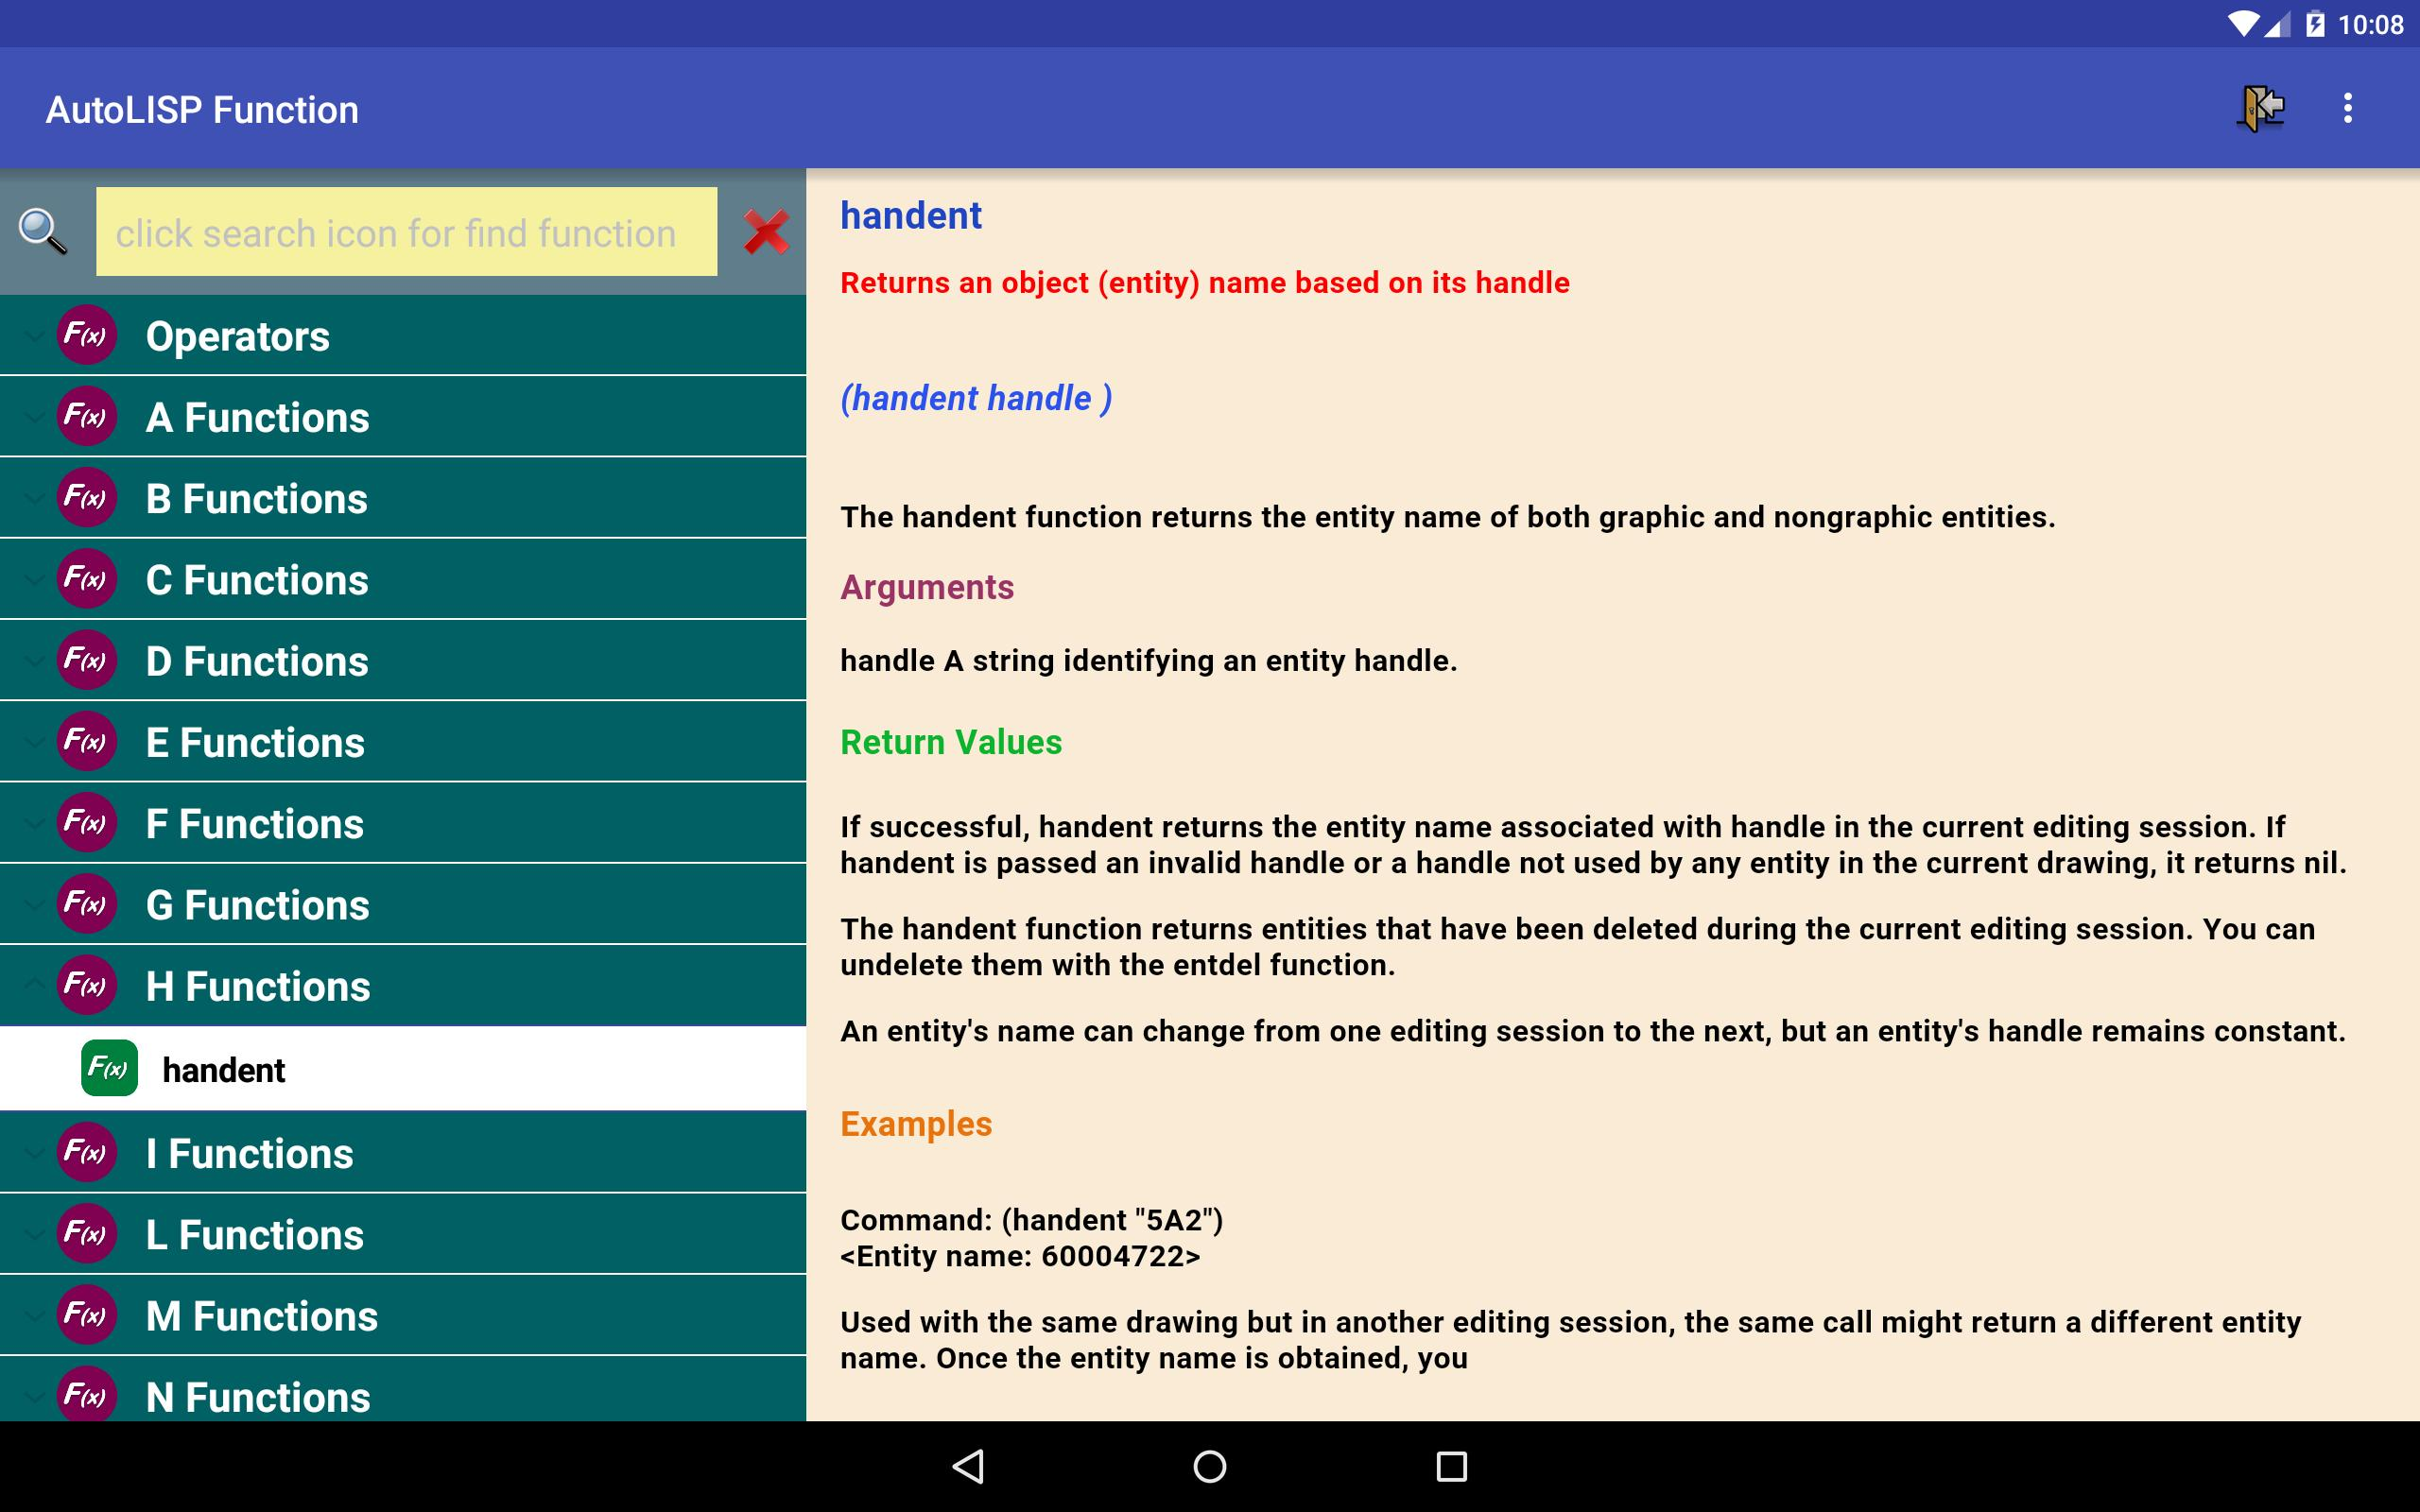 AutoLISP Function for Android - APK Download